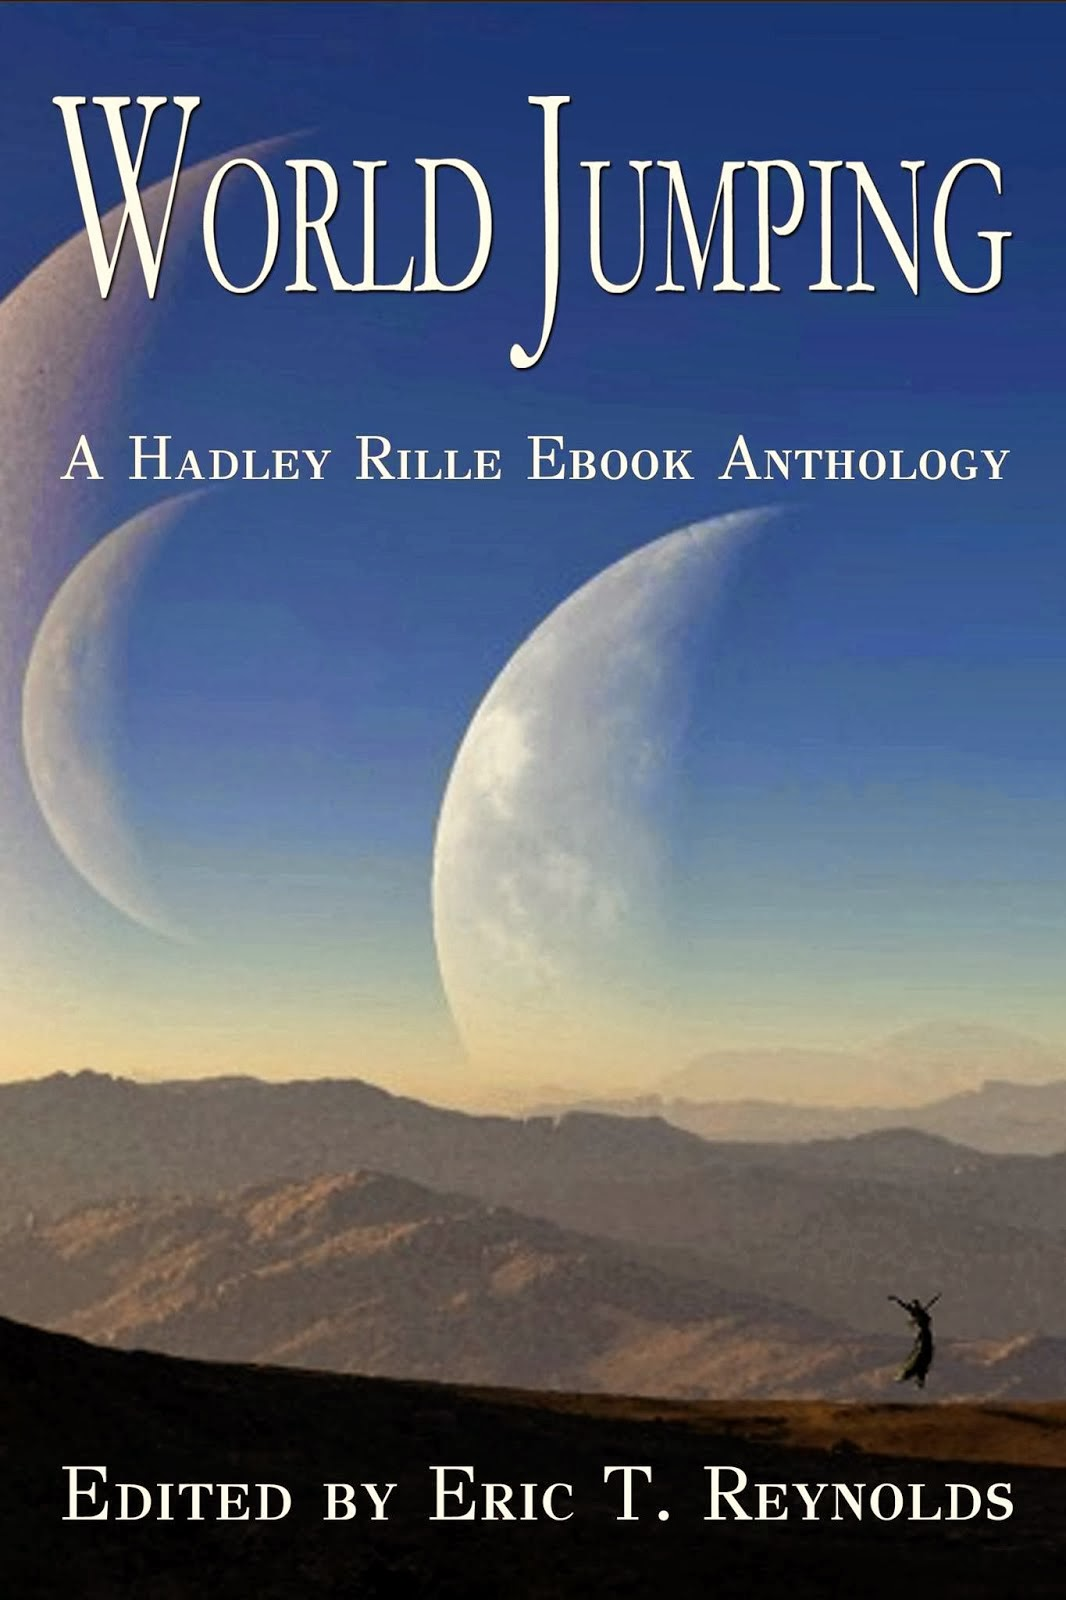 Anthology of Science Fiction and Fantasy featuring some of Hadley Rille Books favorite authors